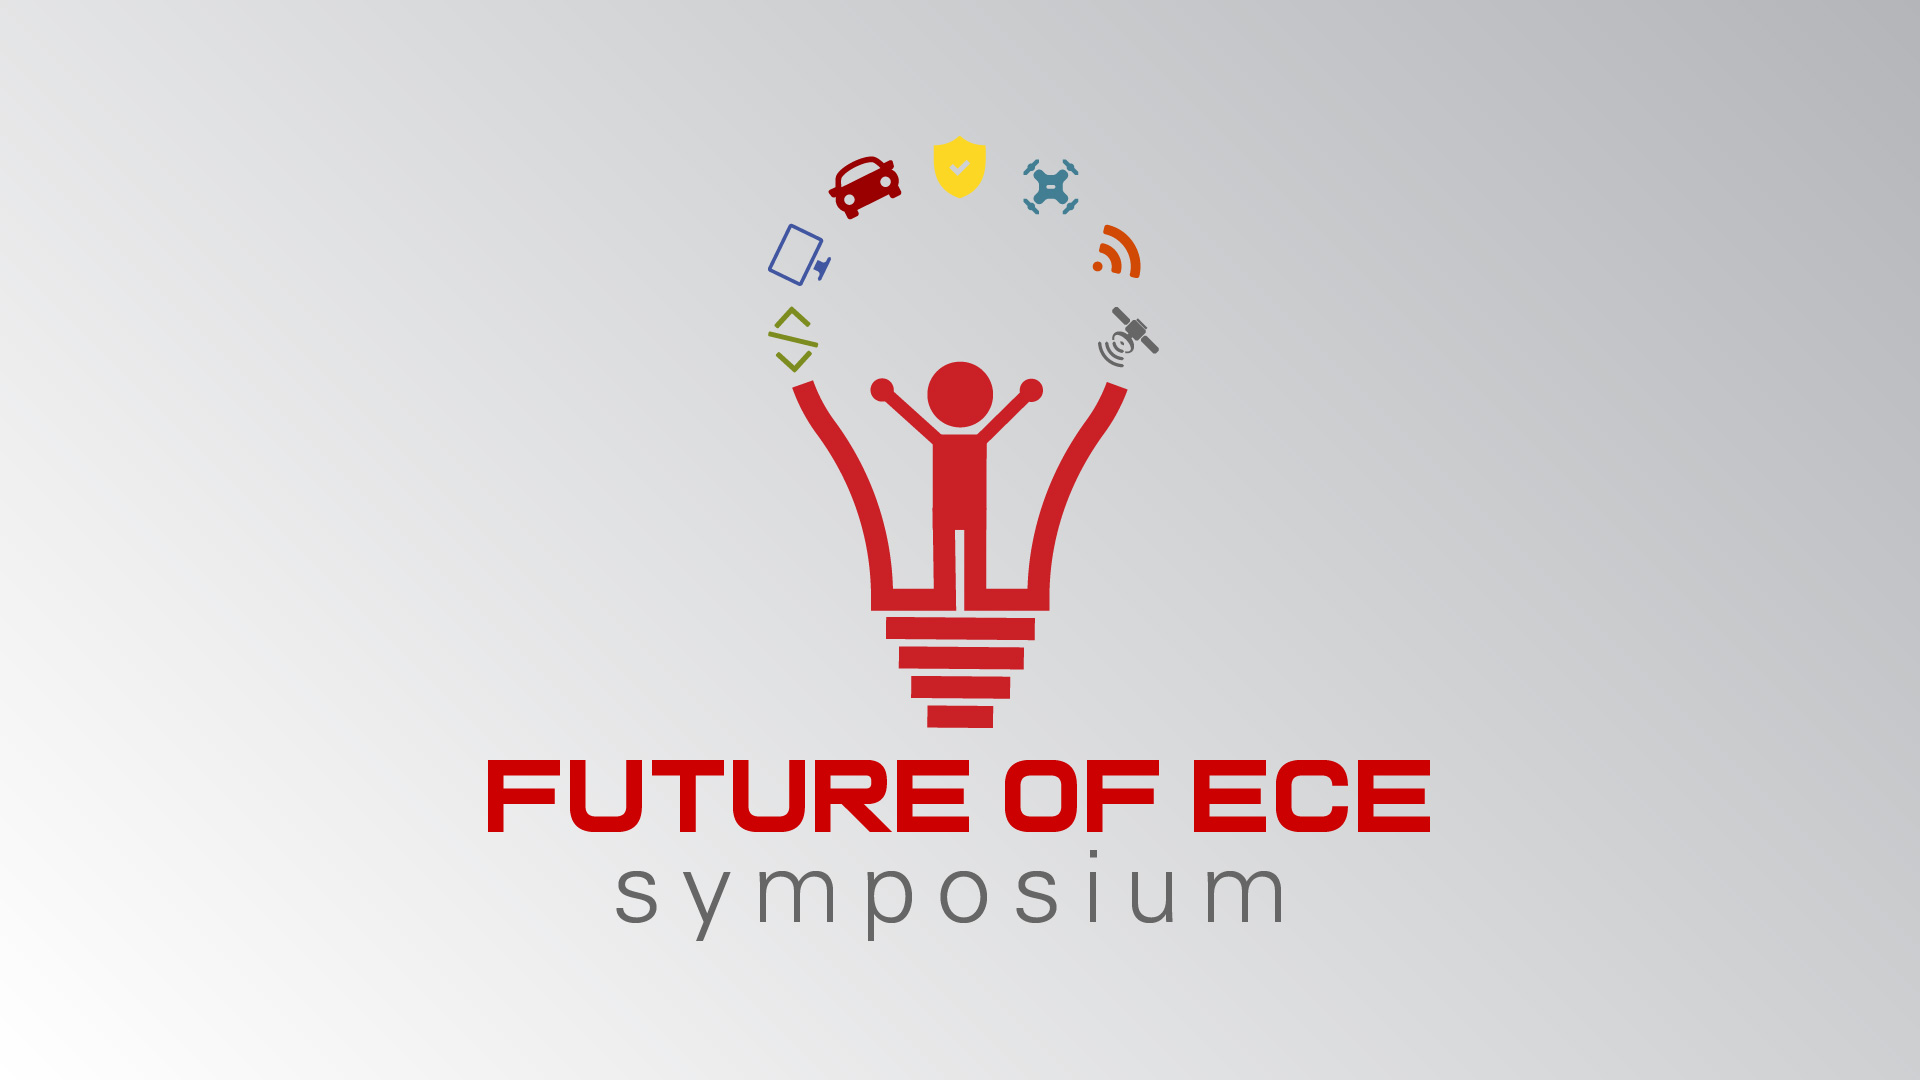 Future of ECE Symposium Electrical and Computer Engineering 1920x1080